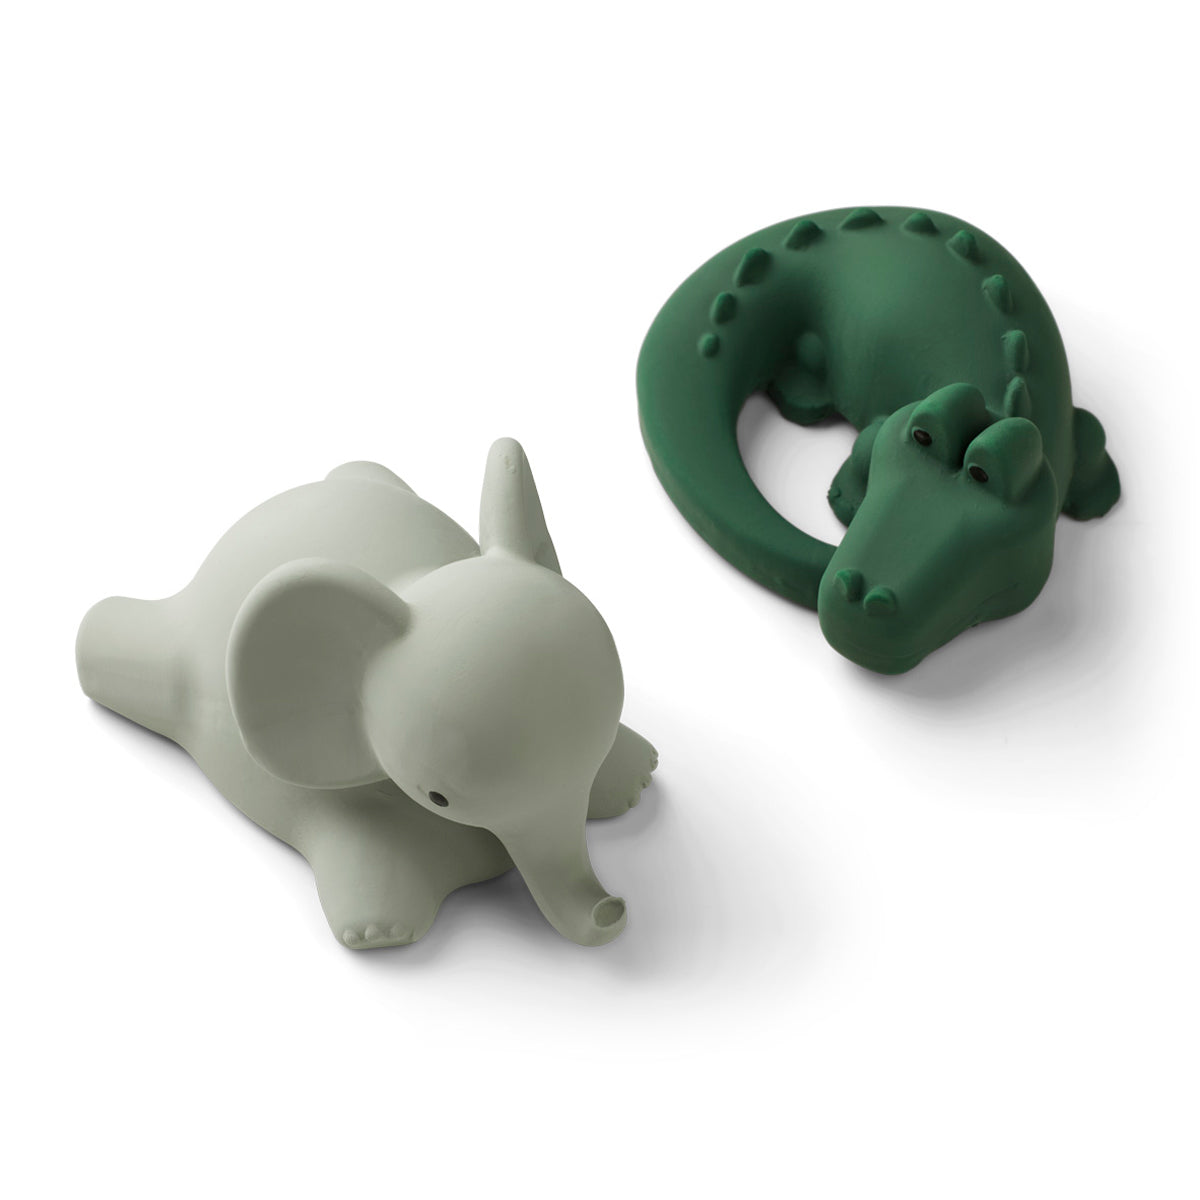 Liewood Vikky Bath Toys 2 Pack - Safari Green Mix